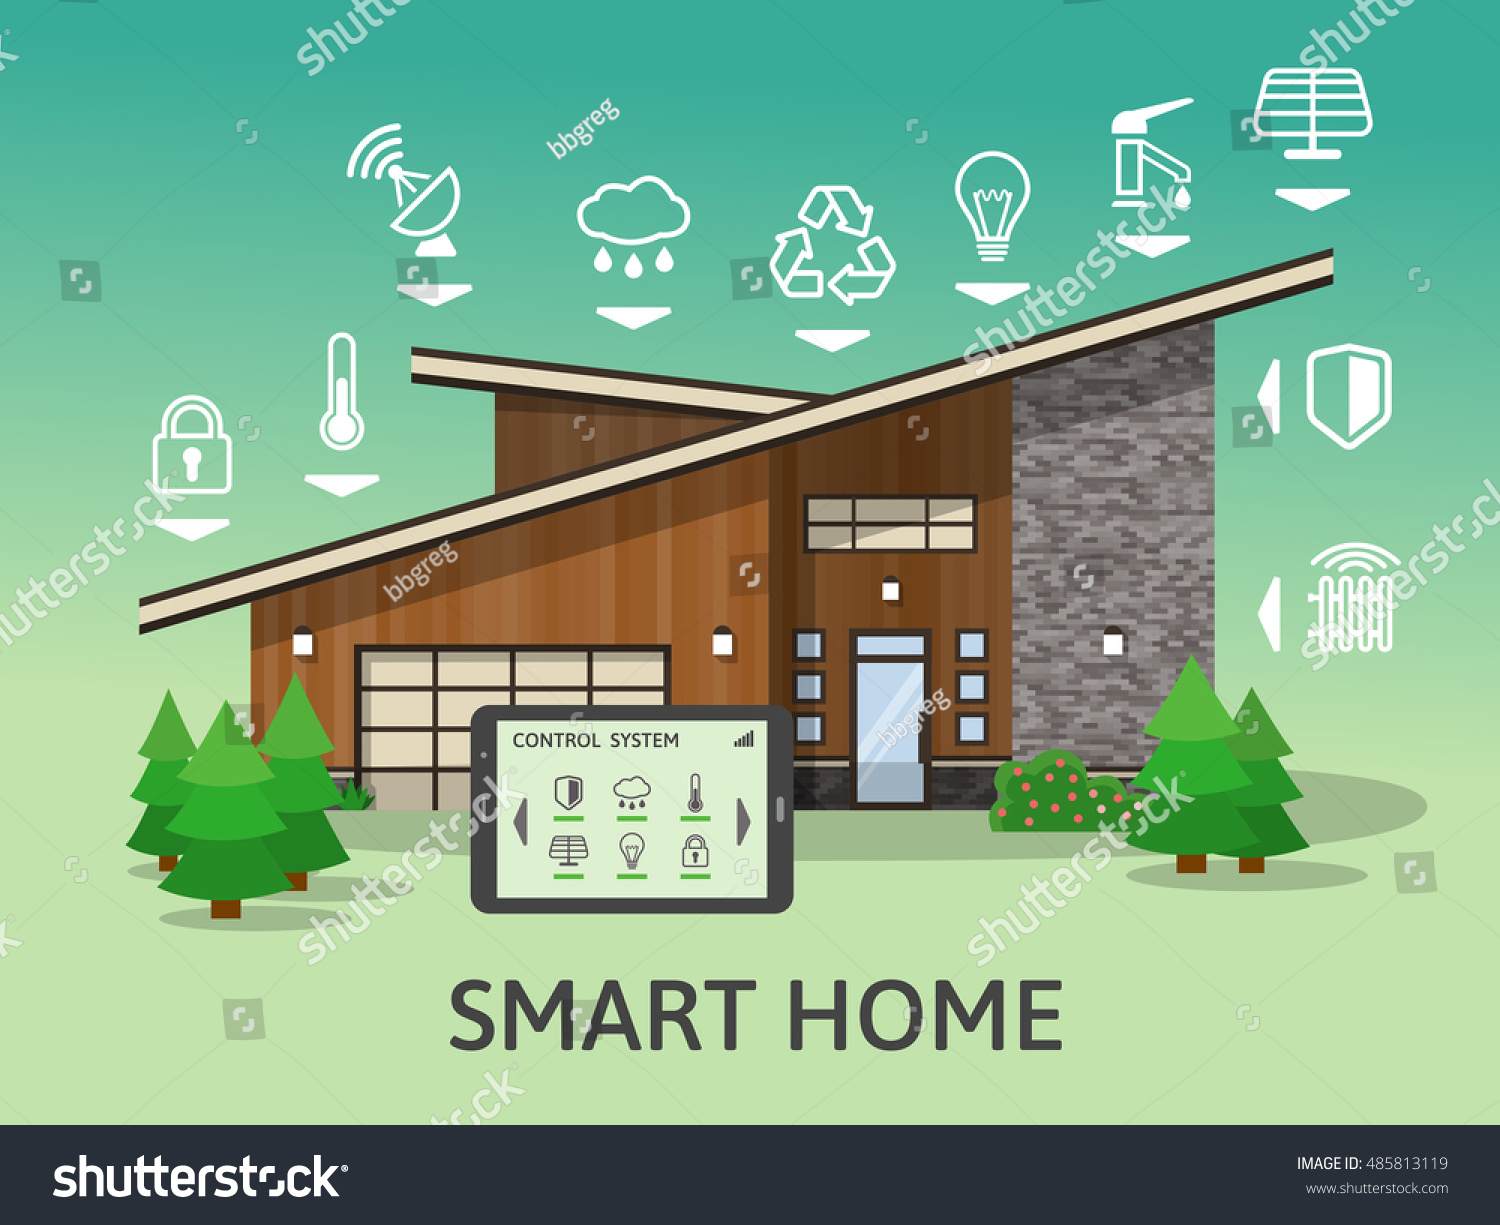 Modern smart home flat design style stock vector 485813119 shutterstock - How to design a smart home ...